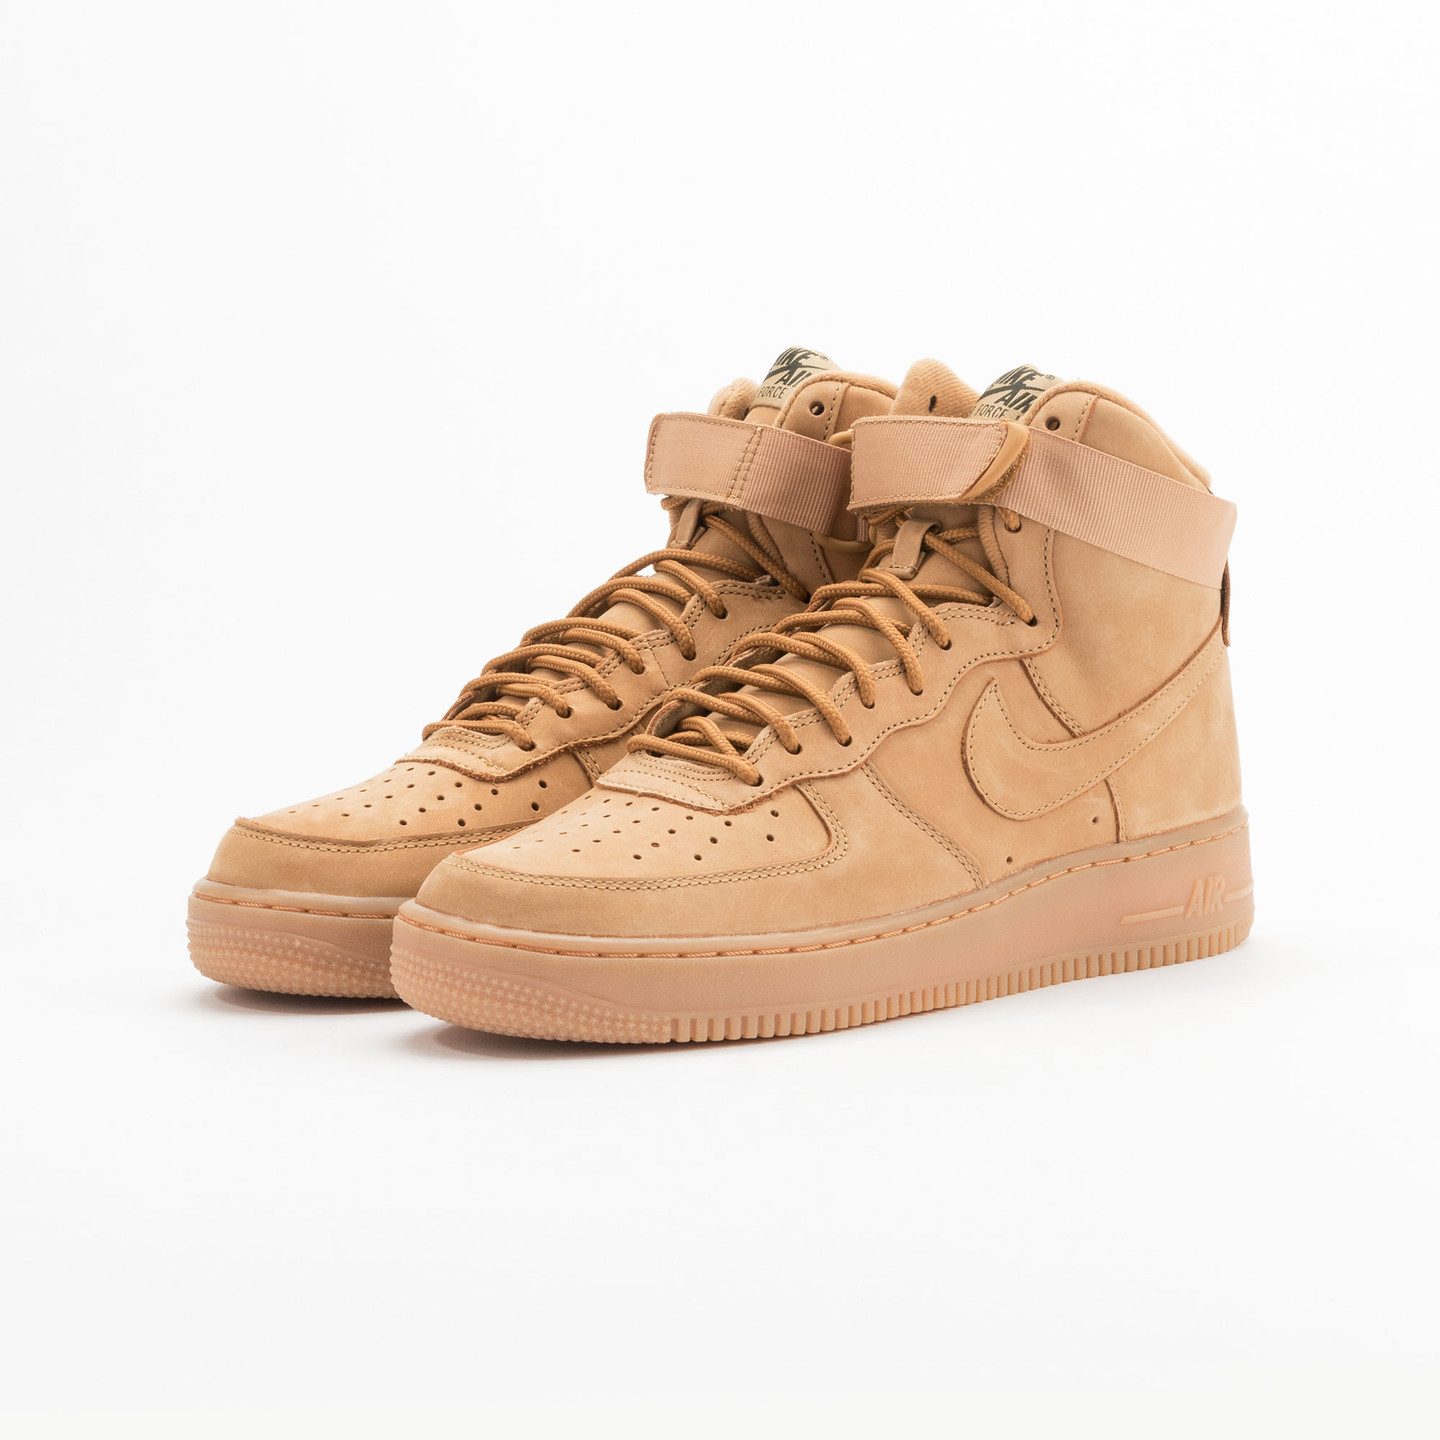 Nike Air Force 1 High ´07 LV8 Flax / Flax 806403-200-42.5